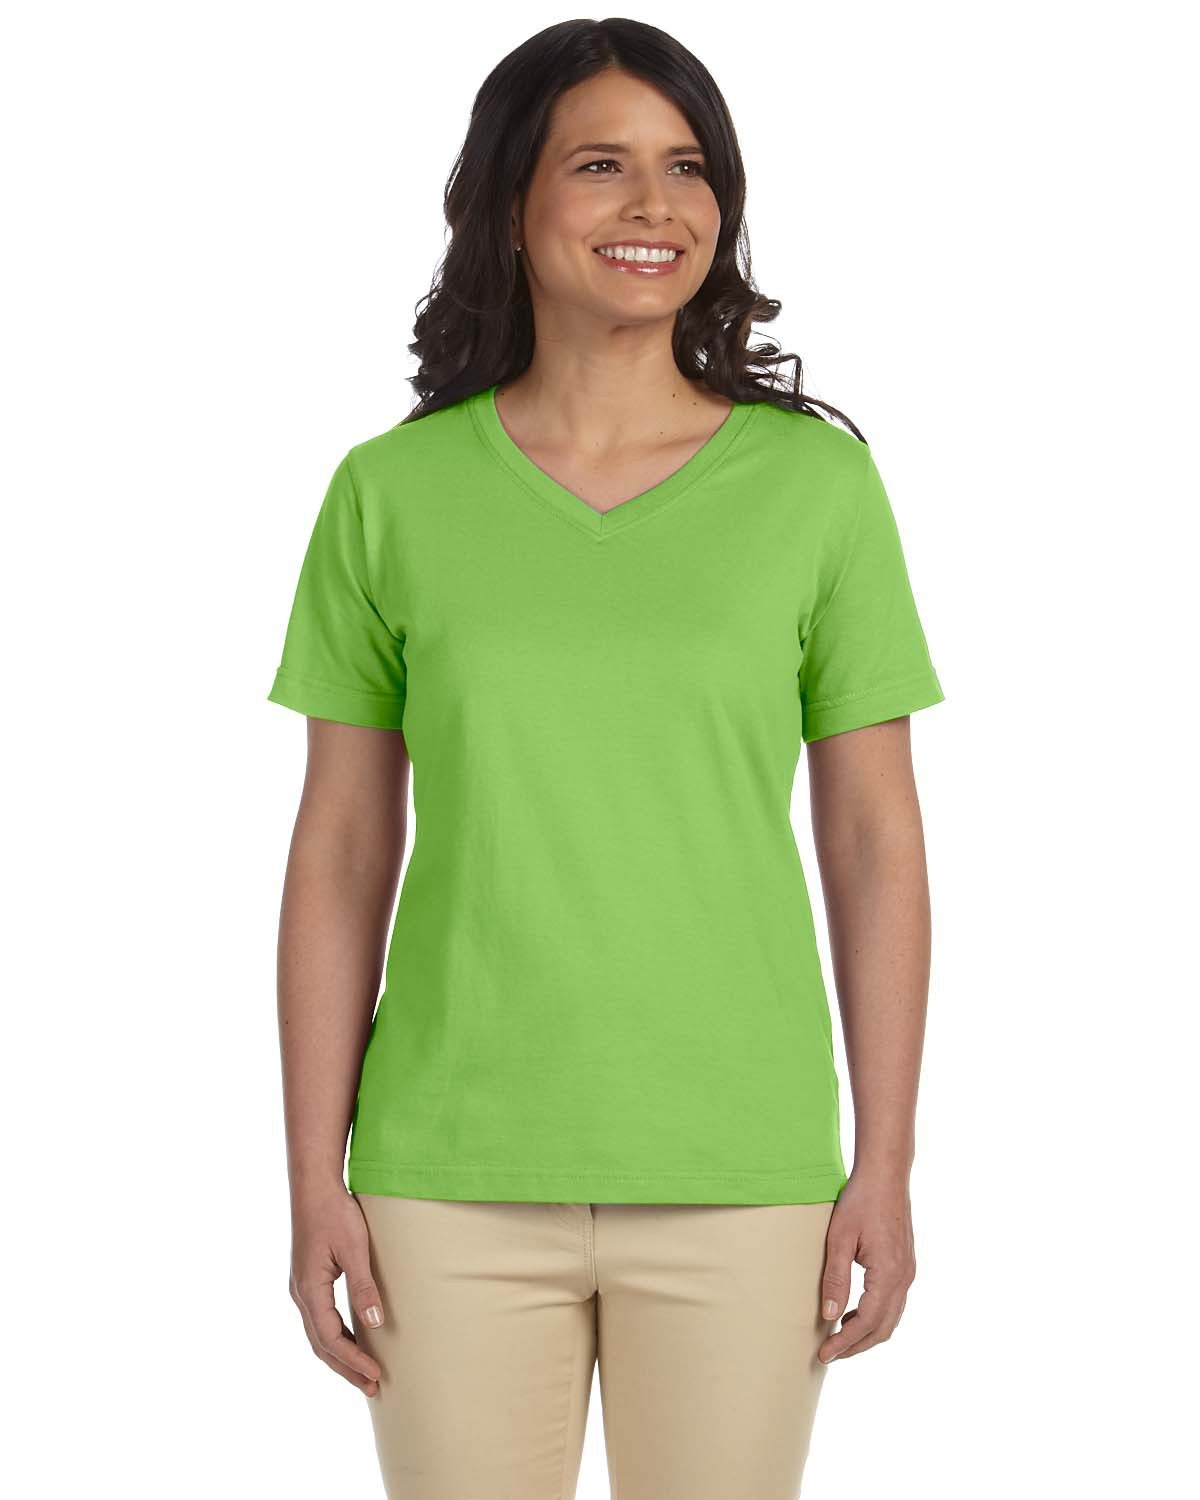 LAT Ladies' Premium Jersey V-Neck T-Shirt KEY LIME